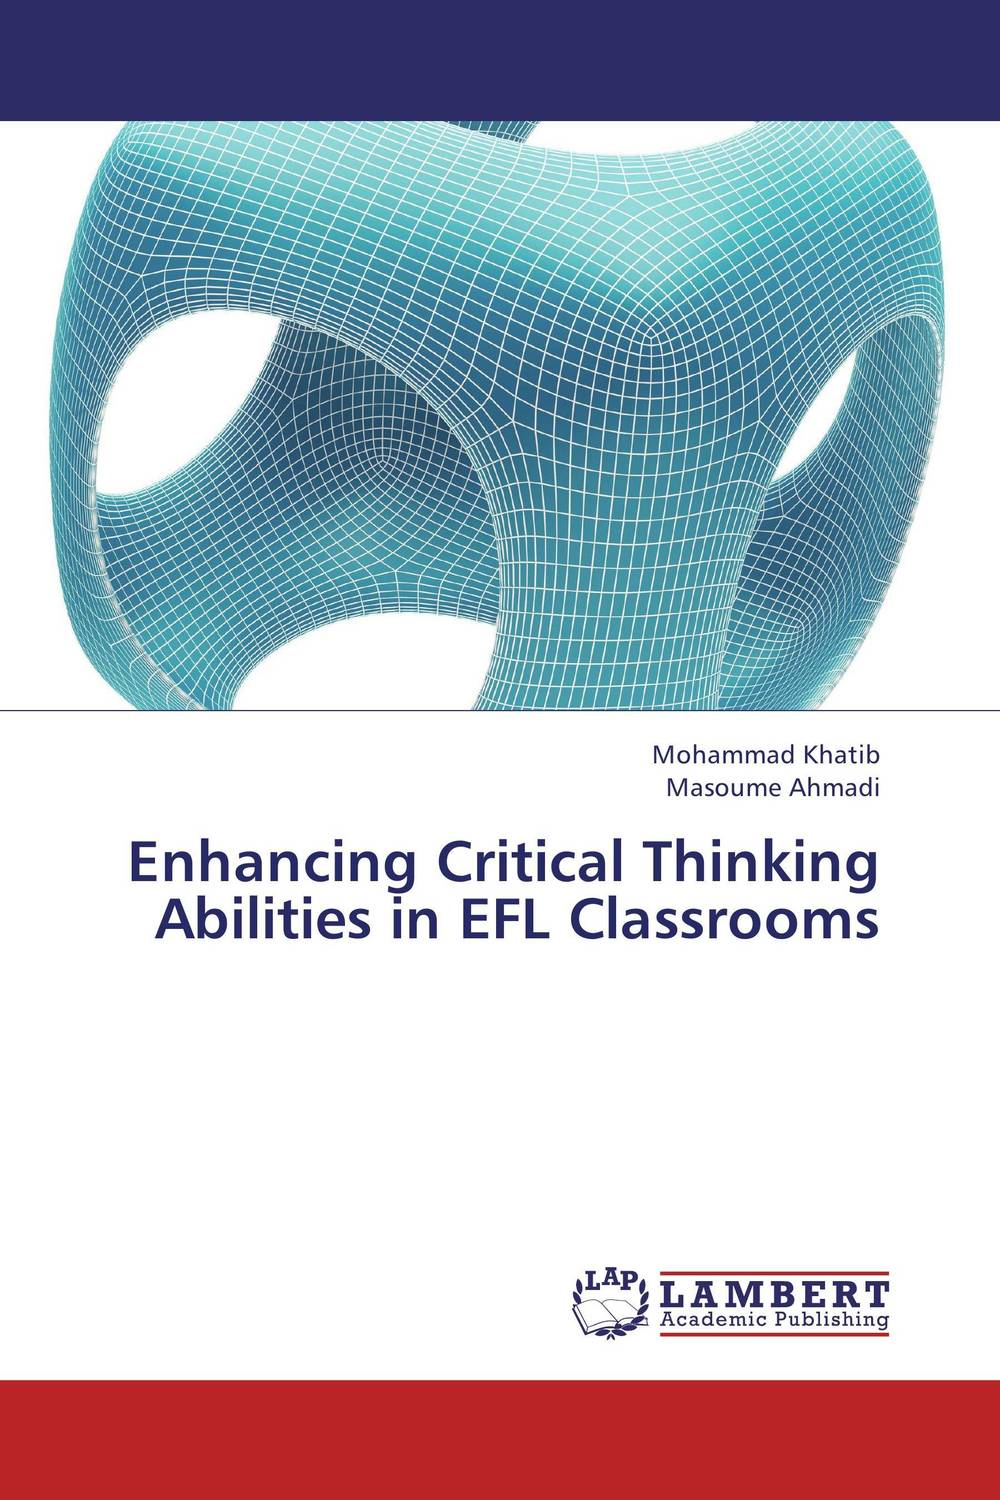 Enhancing Critical Thinking Abilities in EFL Classrooms